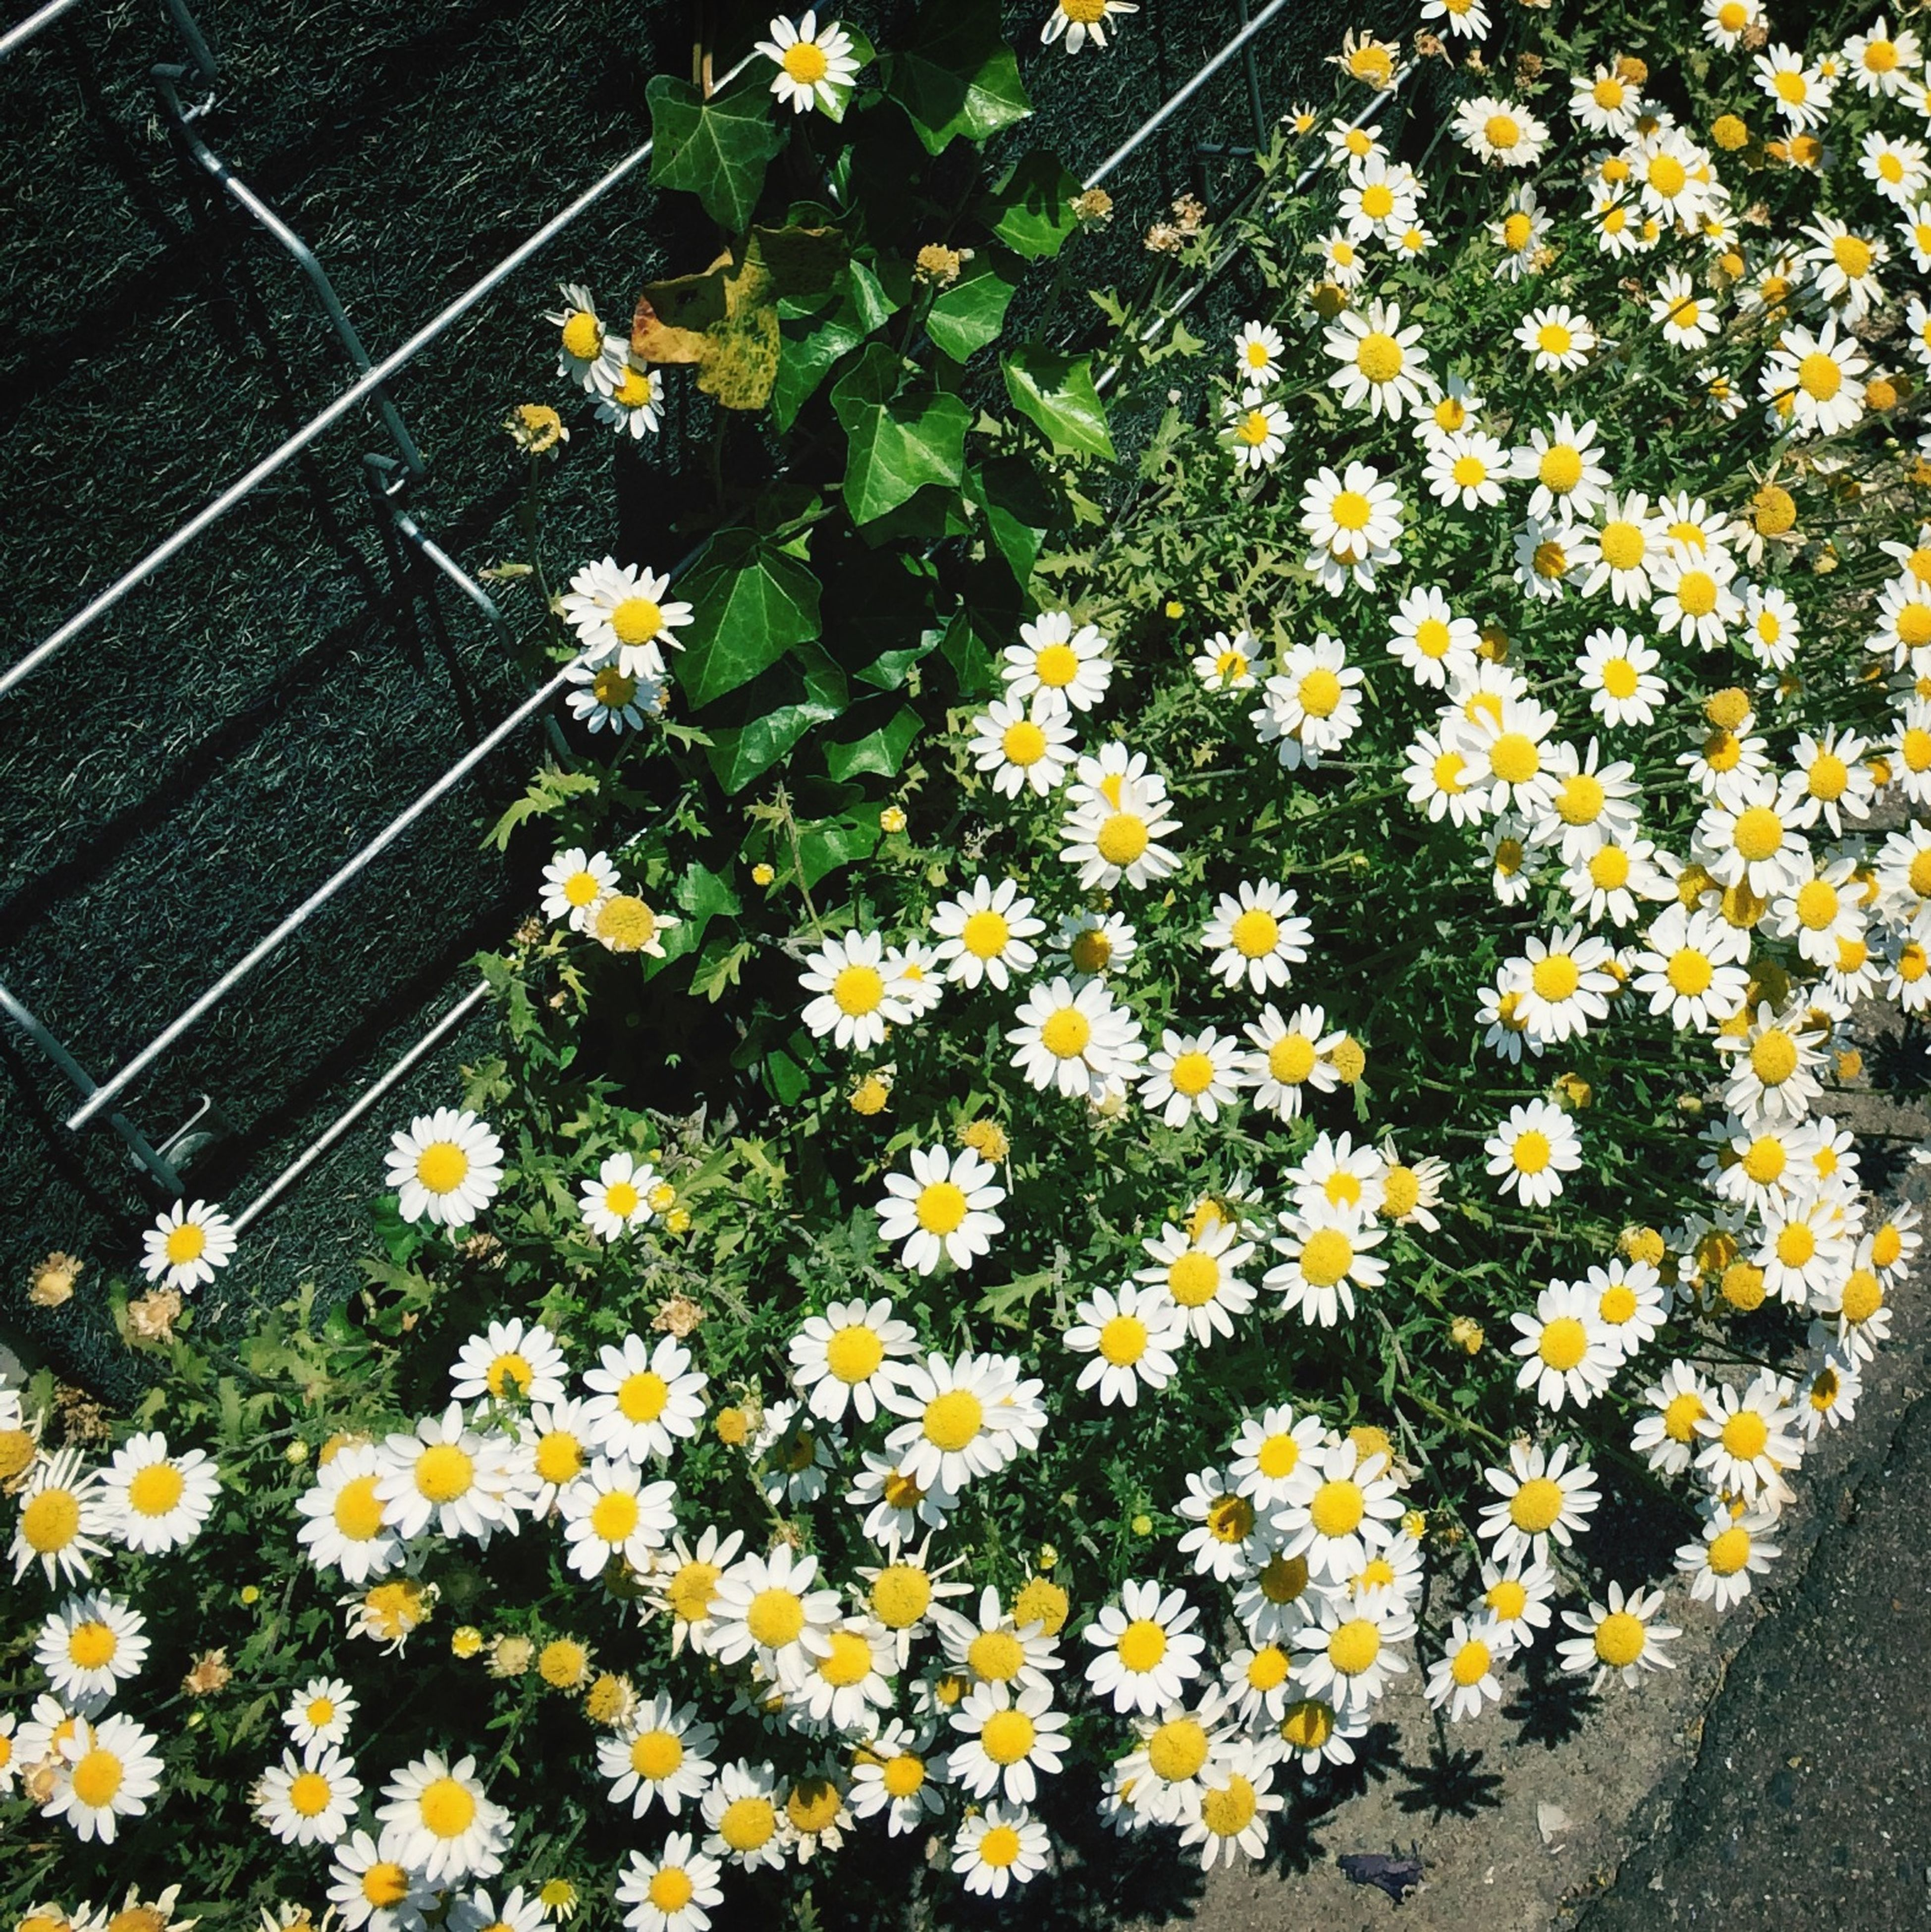 flower, freshness, high angle view, fragility, growth, yellow, petal, plant, beauty in nature, white color, nature, daisy, flower head, blooming, in bloom, blossom, day, outdoors, no people, field